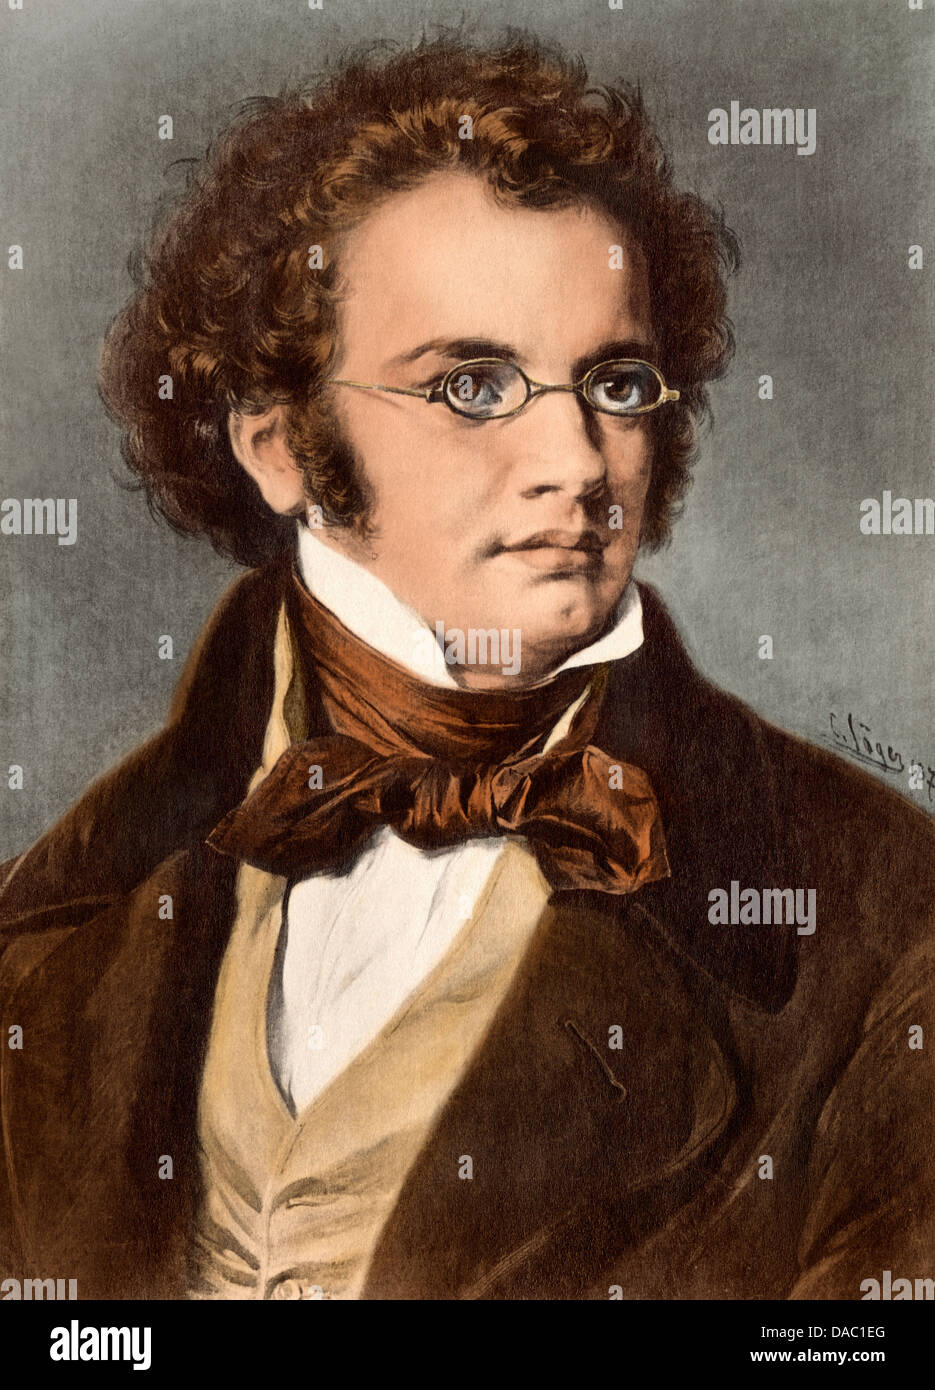 Portrait of composer Franz Schubert. Digitally colored illustration - Stock Image